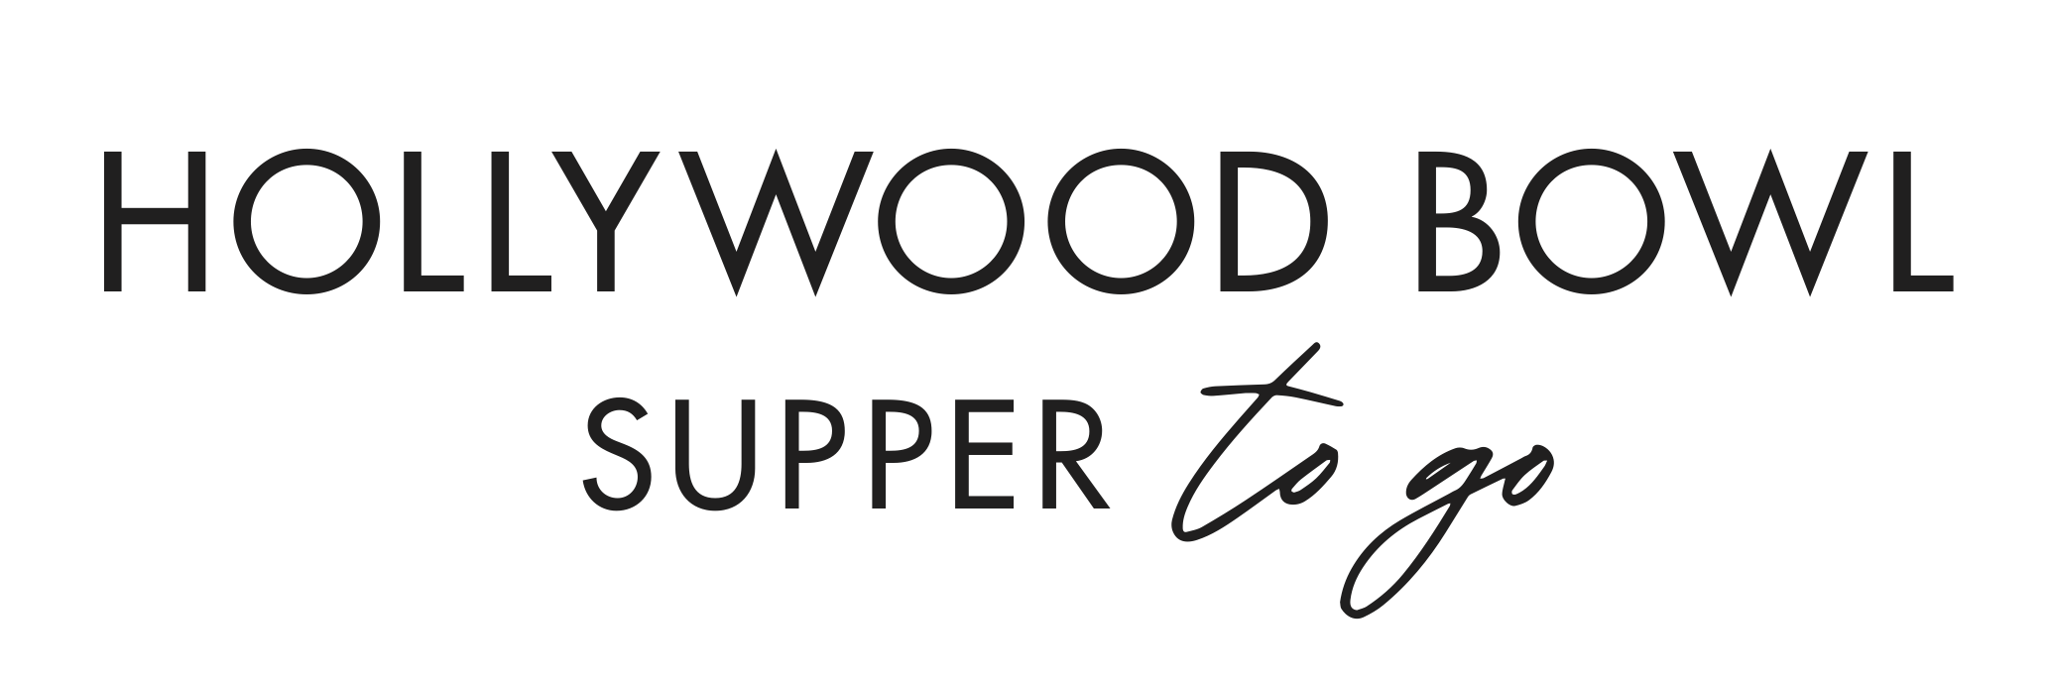 Hollywood Bowl Supper to Go logo